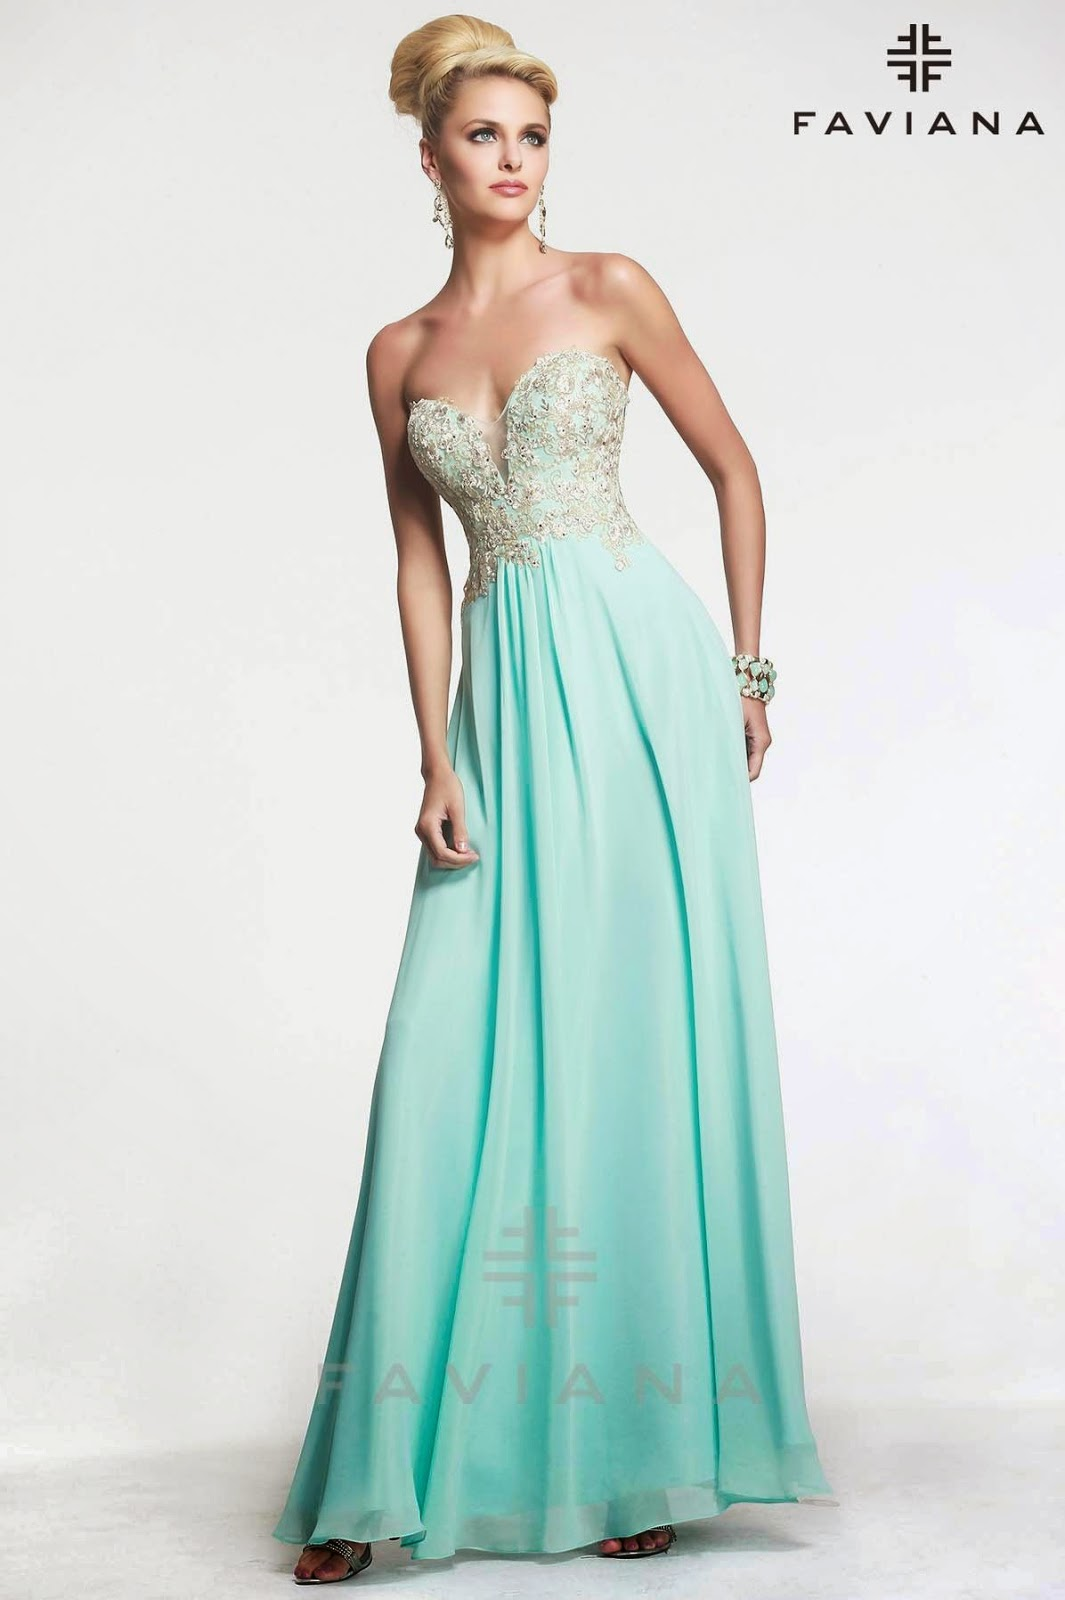 http://www.faviana.com/catalog/dress-s7325?category=prom-2015